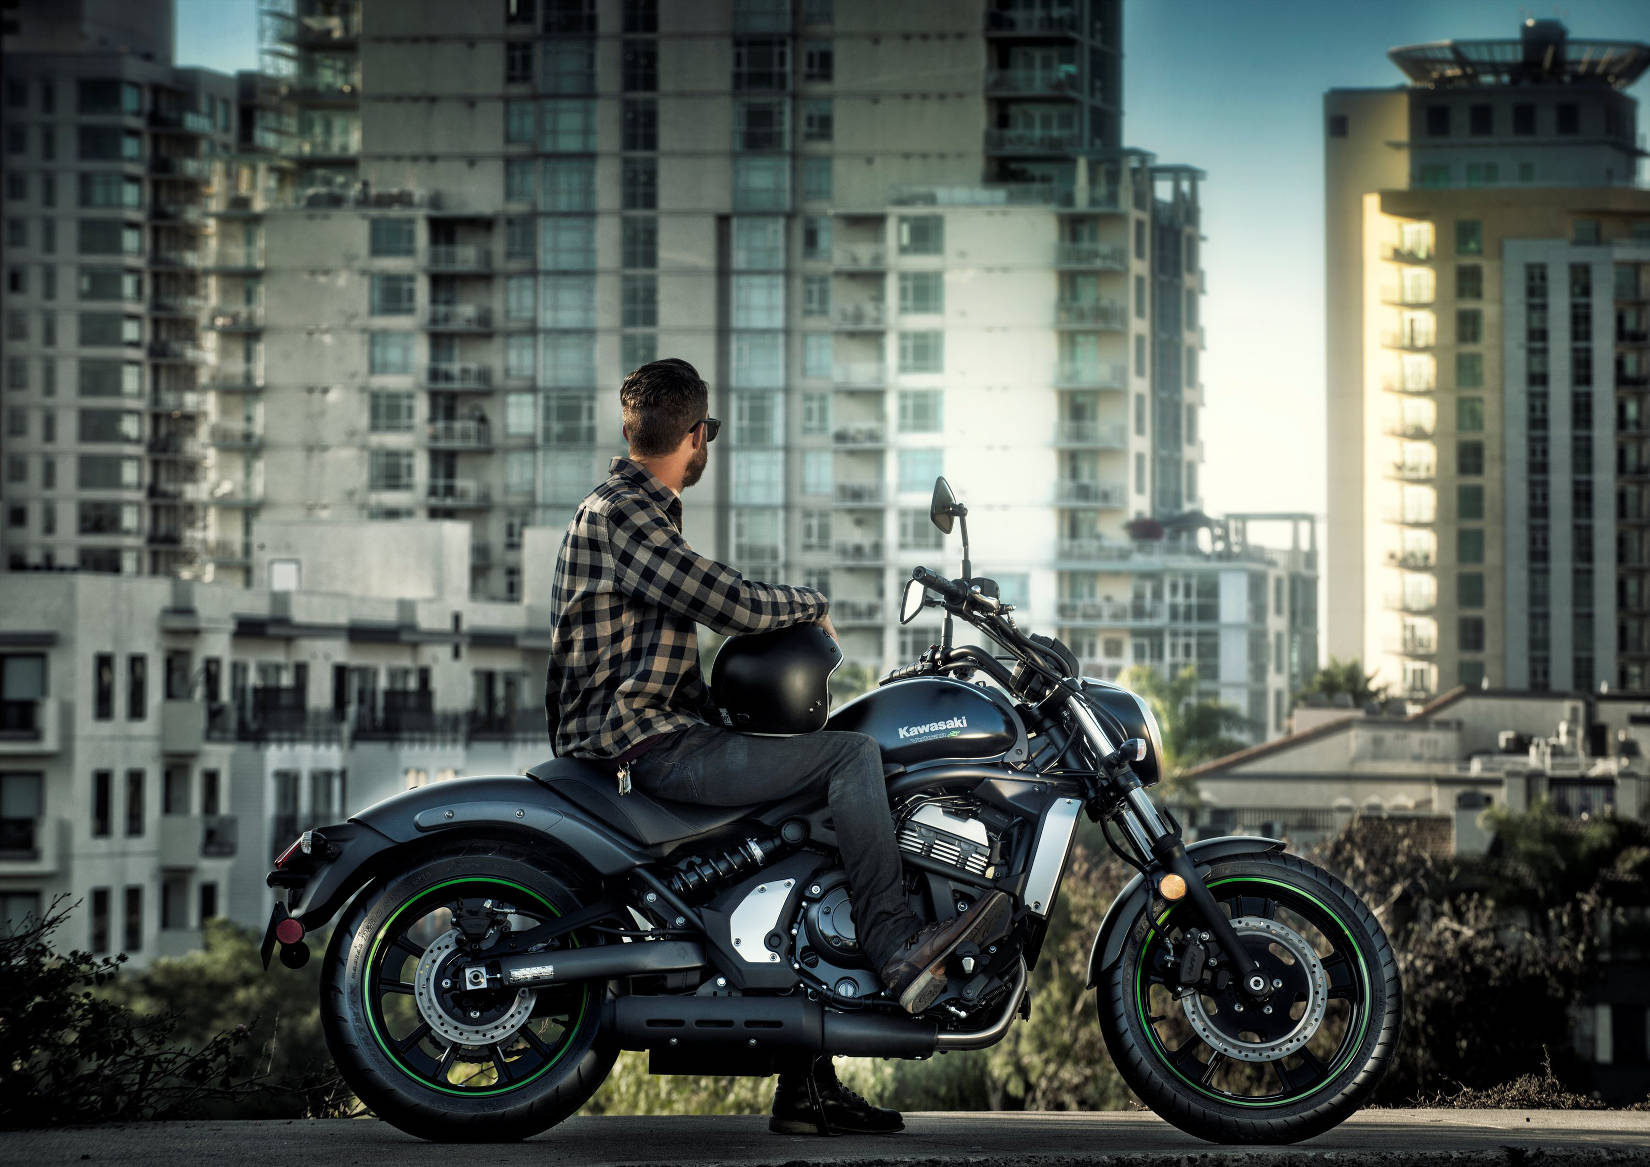 kawasaki announces new vulcan s at aimexpo (with video, including